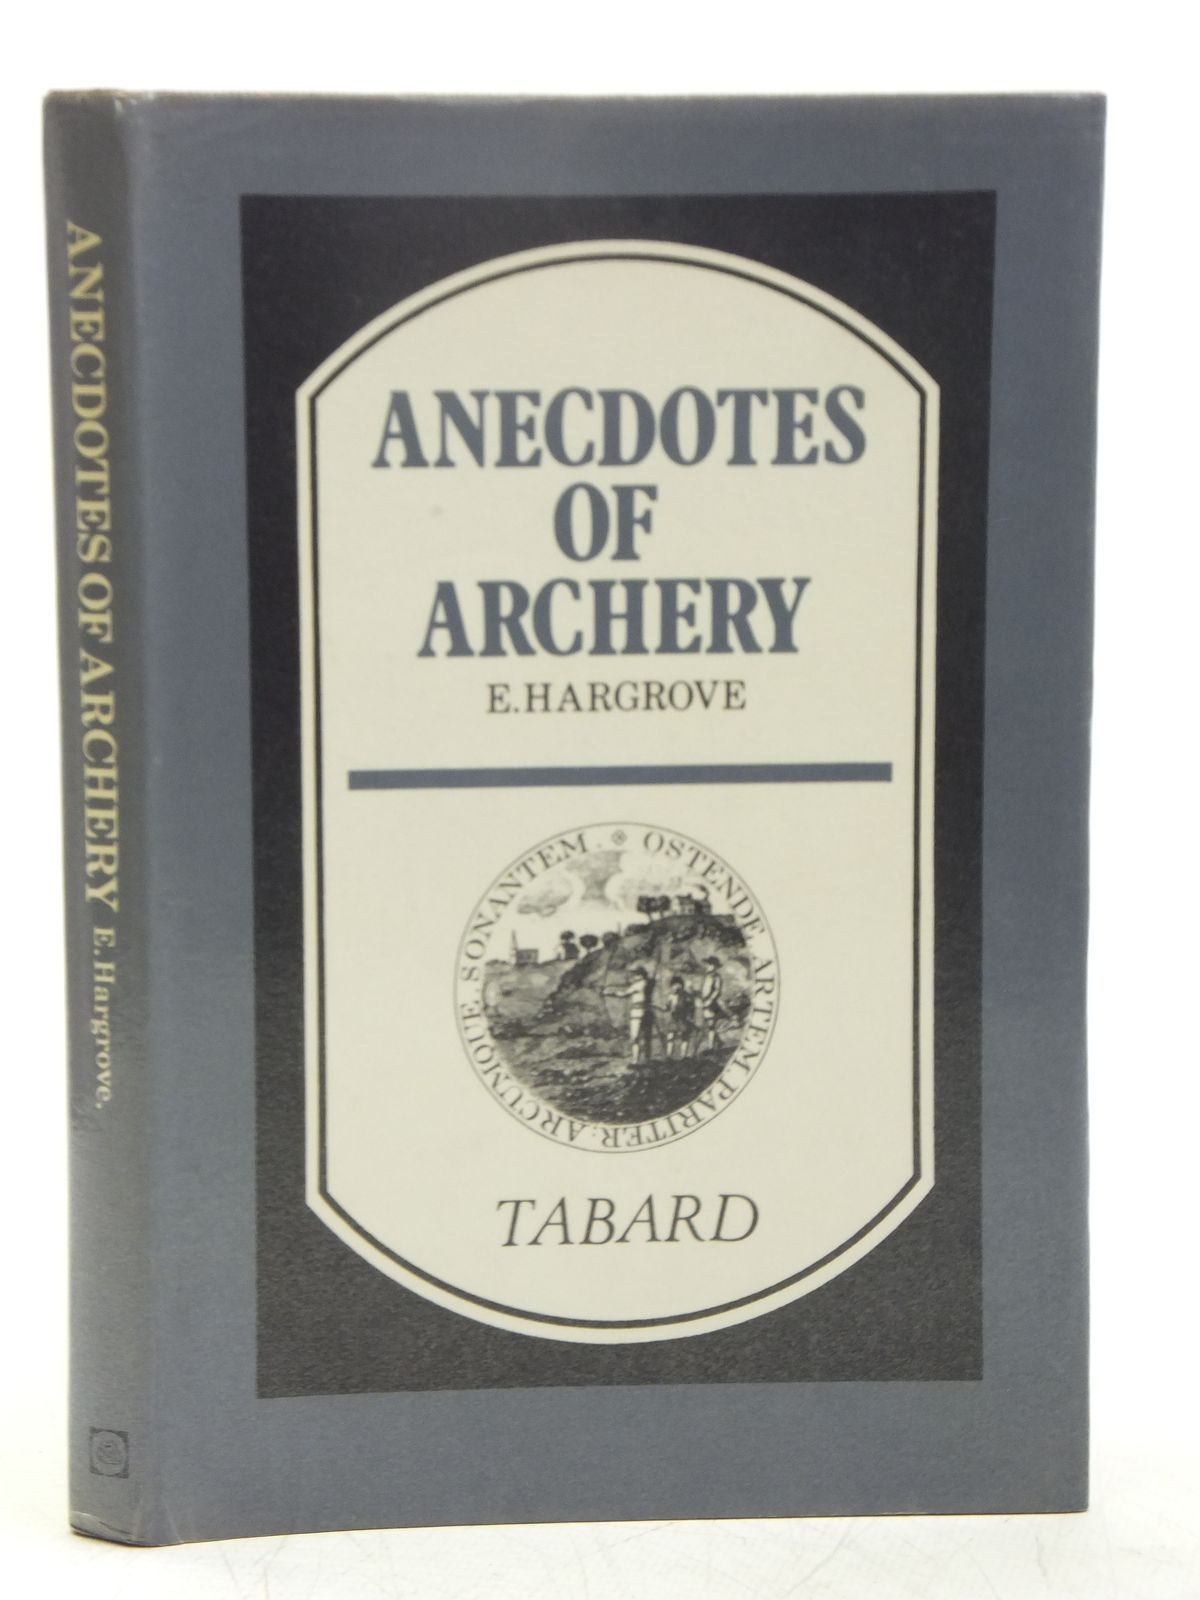 Photo of ANECDOTES OF ARCHERY written by Hargrove, H published by Tabard Press (STOCK CODE: 2118741)  for sale by Stella & Rose's Books